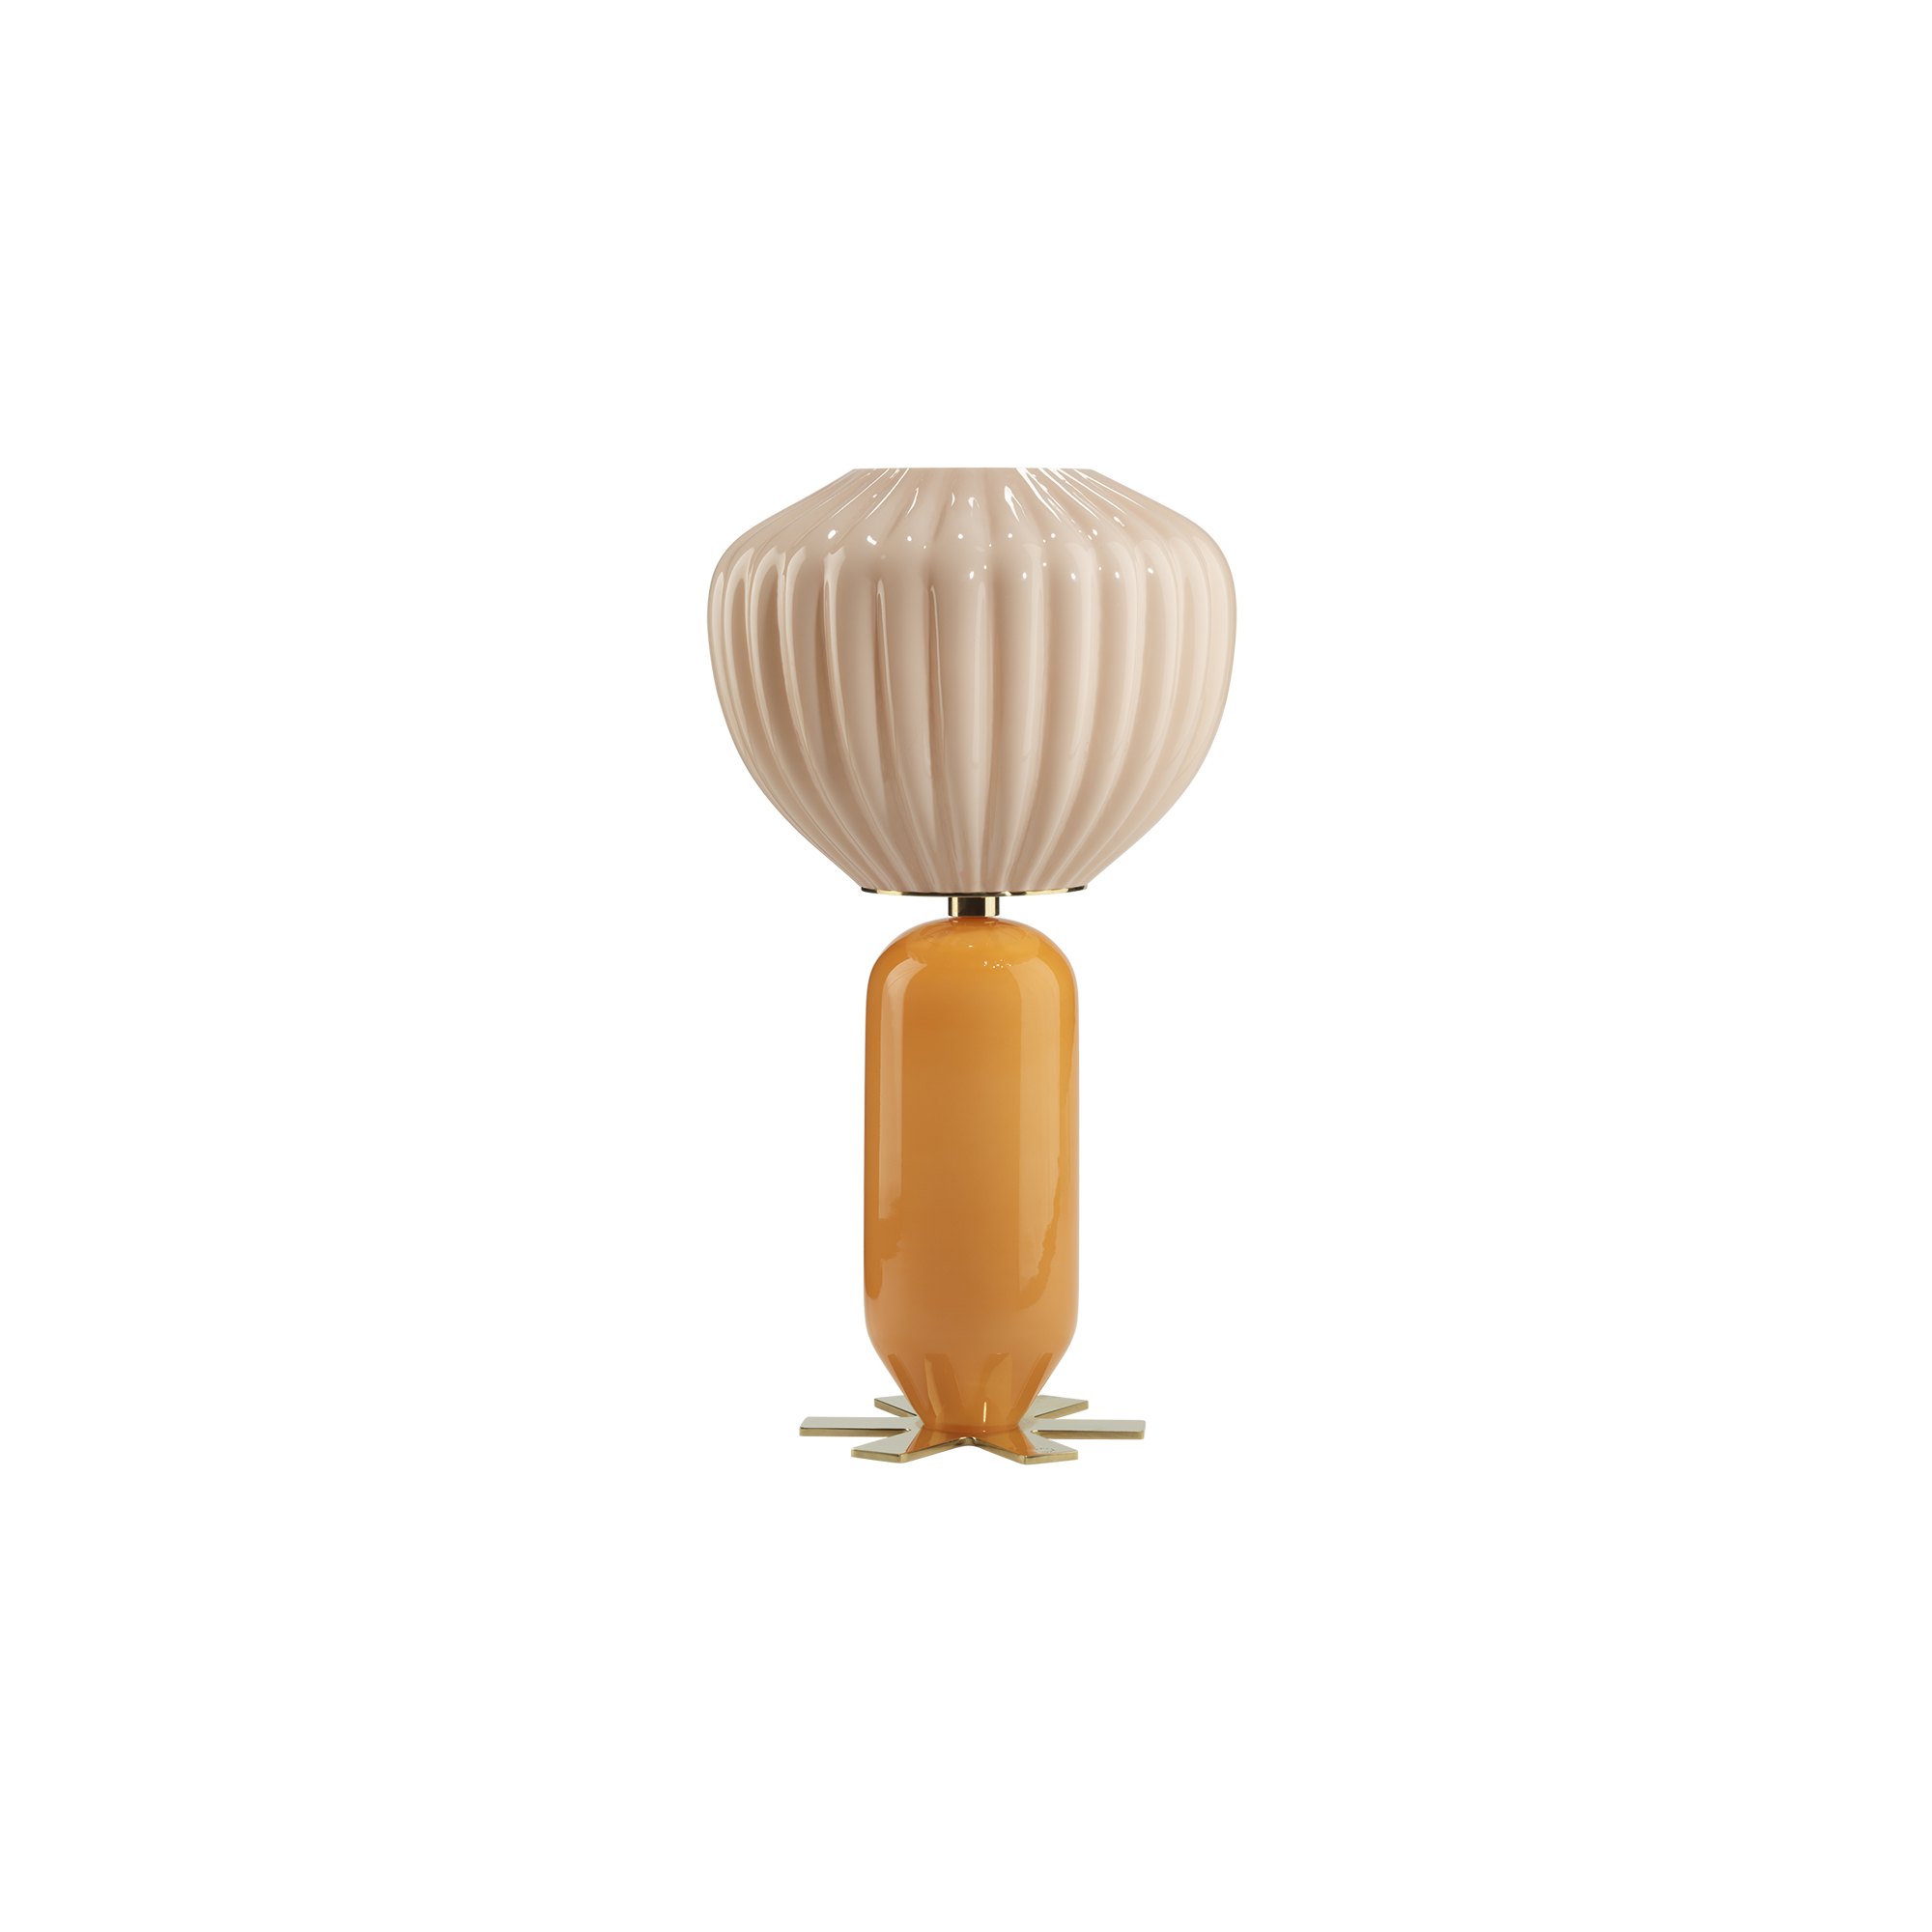 Don Giovanni lamp - MANDARINE, PINK - India Mahdavi